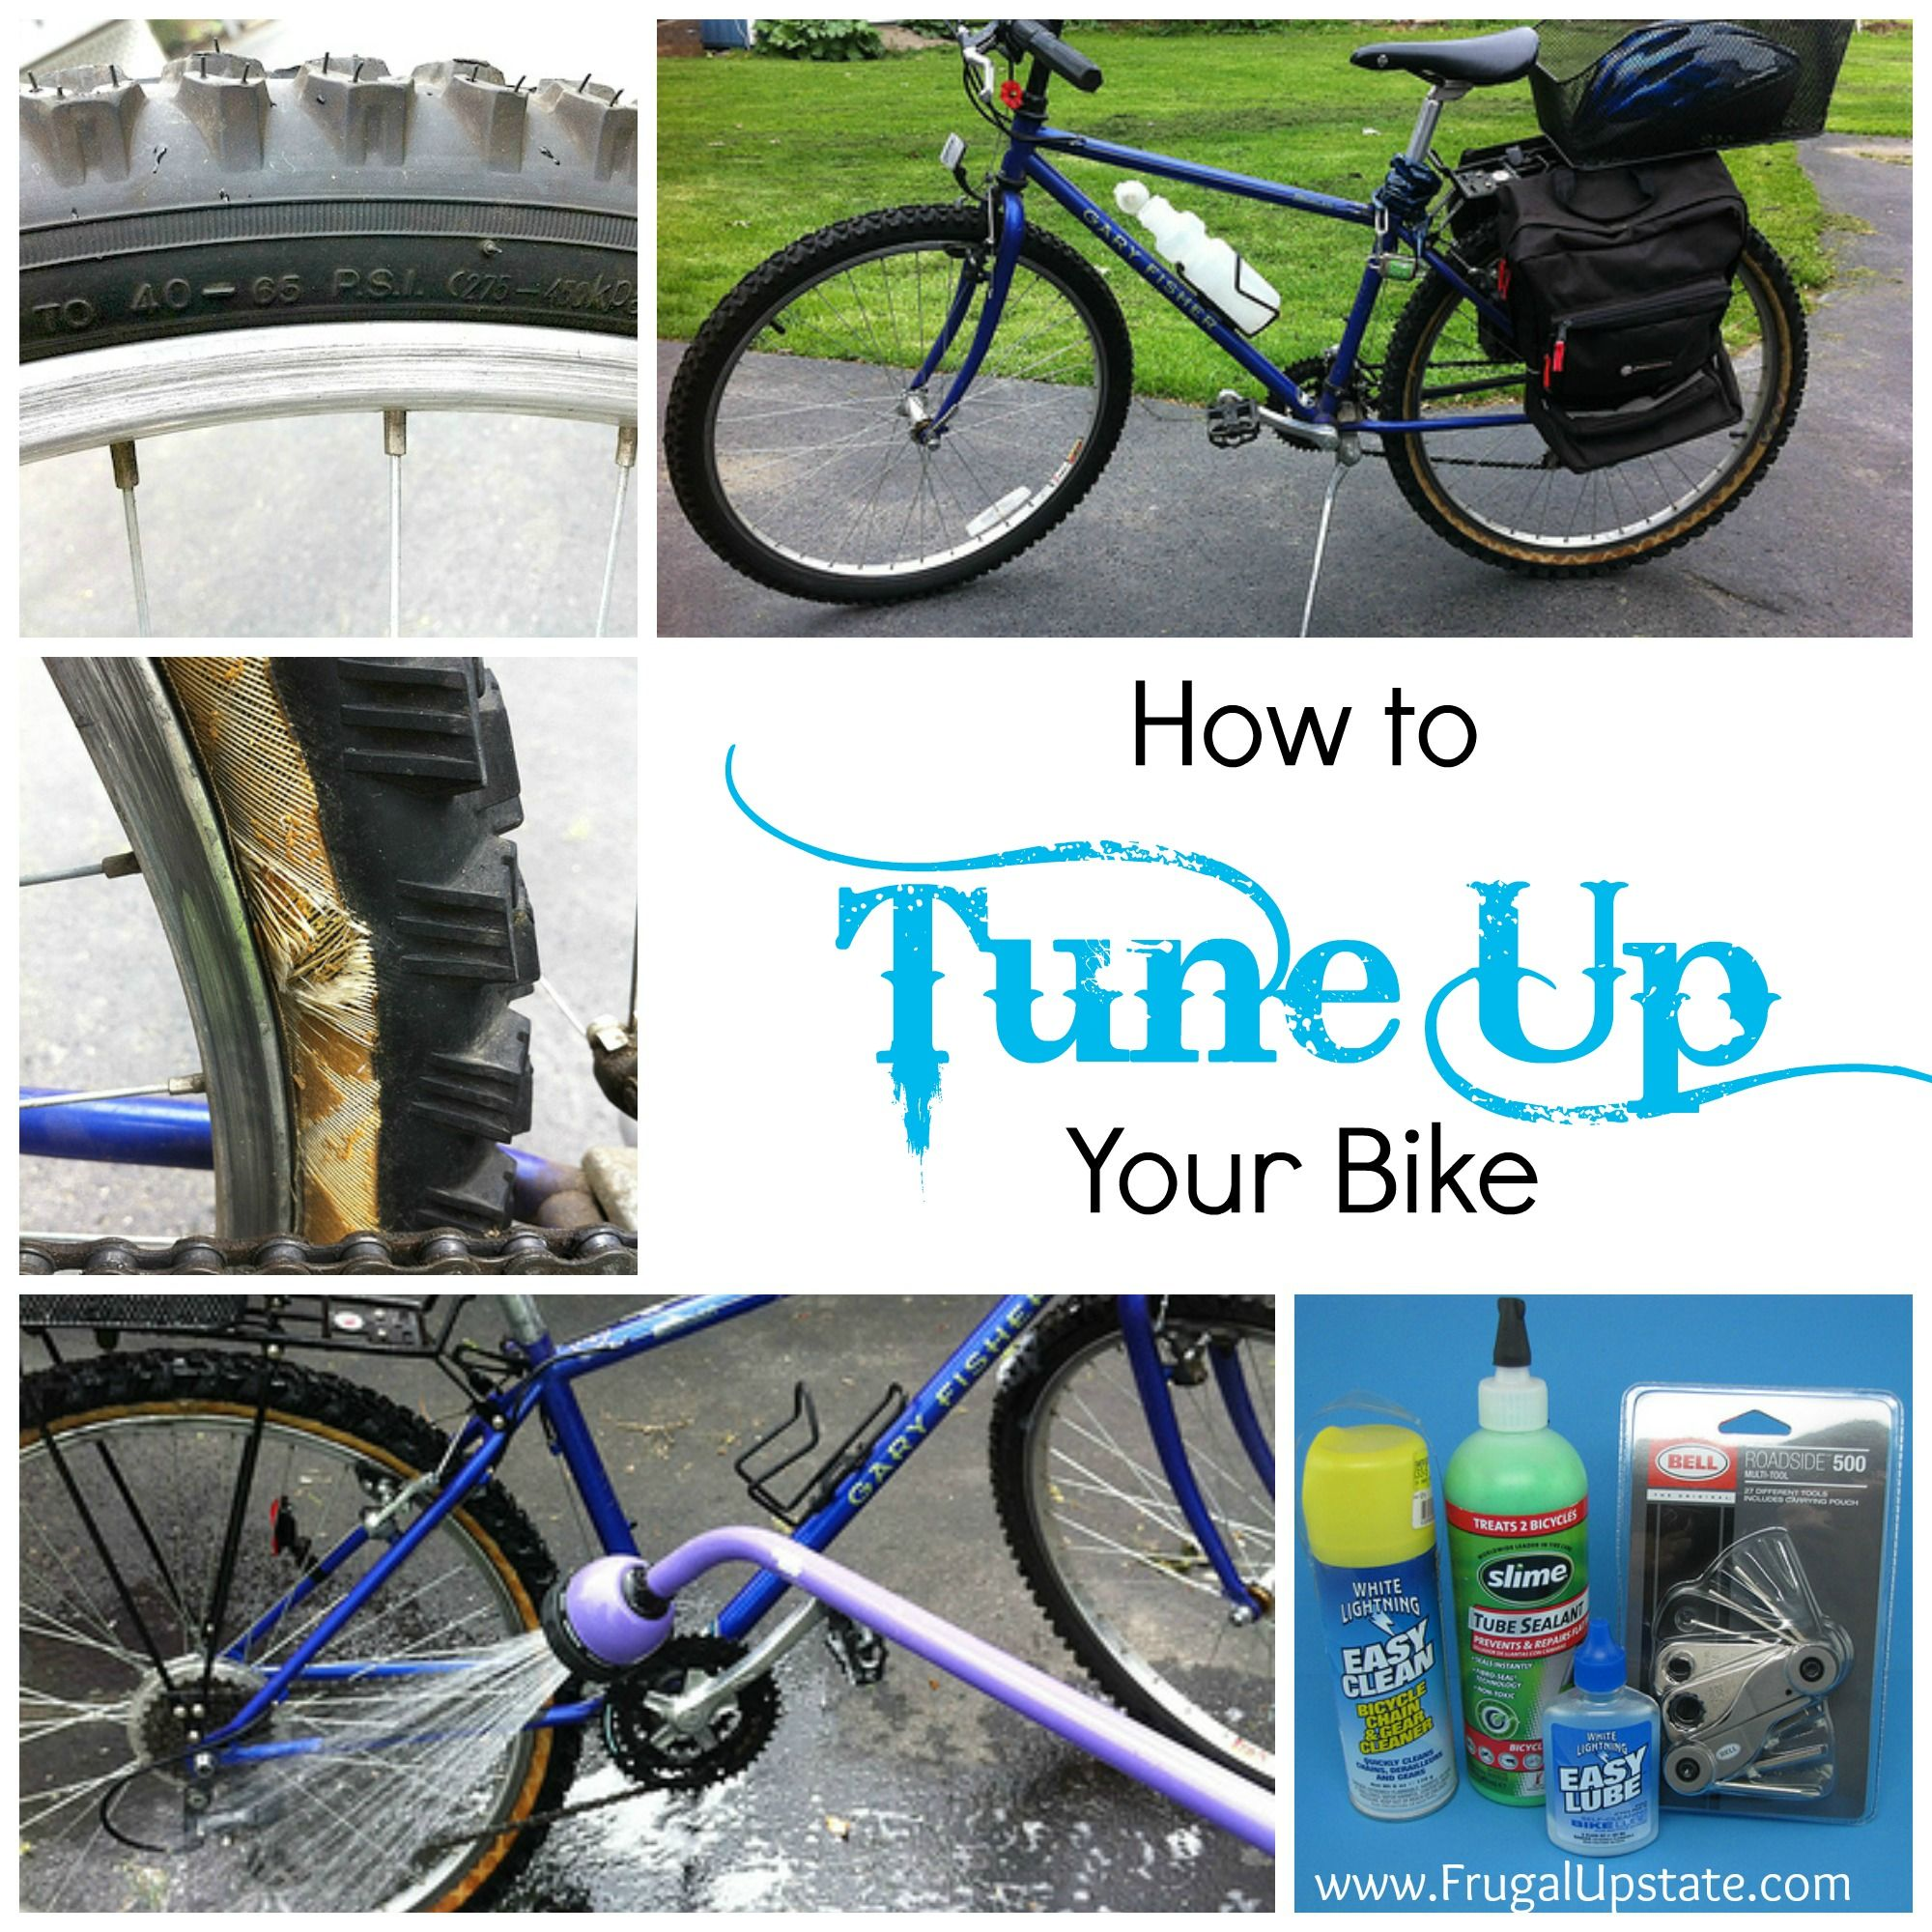 How To Tune Up Your Bike For Spring Frugal Upstate Bike Repair Bike Accessories Diy Bicycle Maintenance